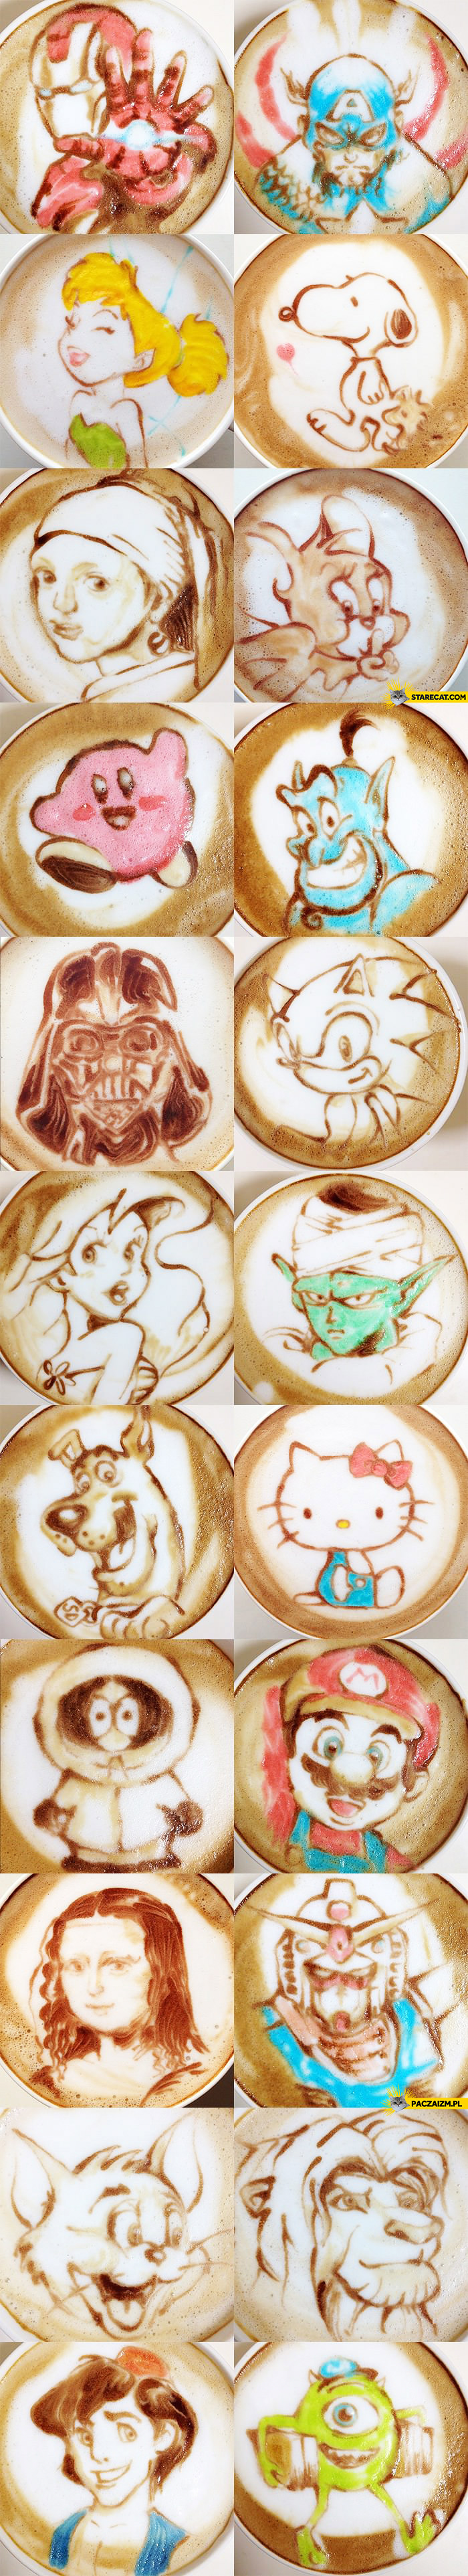 Artistic coffee latte cartoon characters